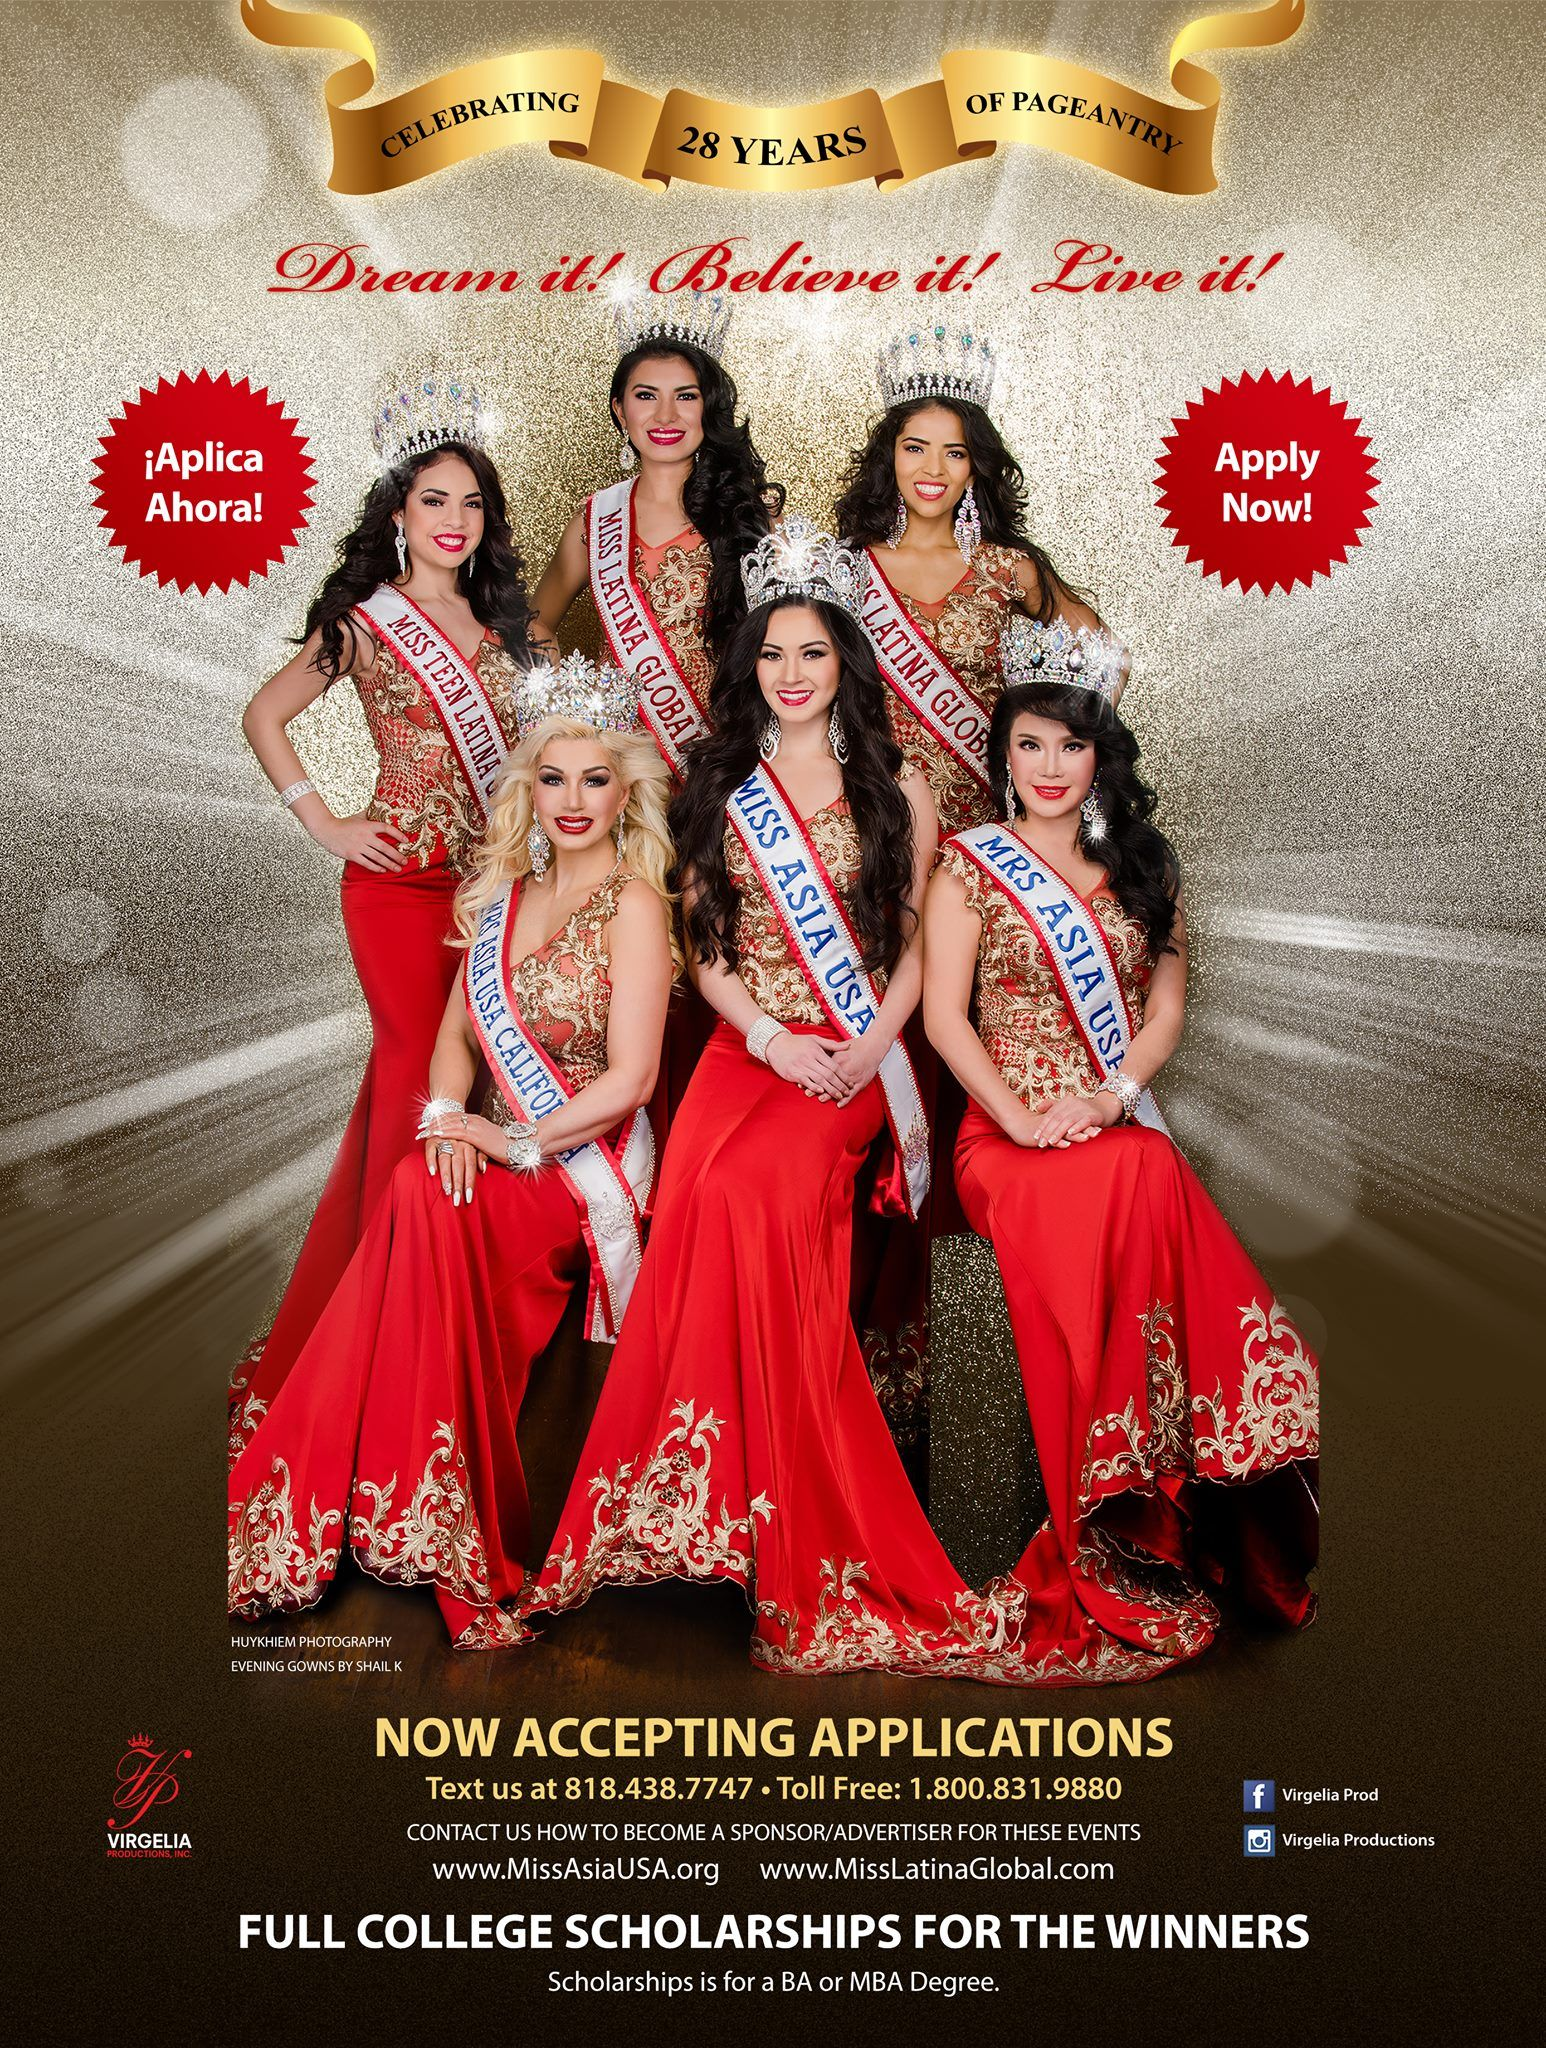 do beauty pageants serve a purpose A: the purpose of an adult beauty pageant is to promote community service and to provide educational opportunities through scholarships pageants are also said to encourage positive qualities in young participants.